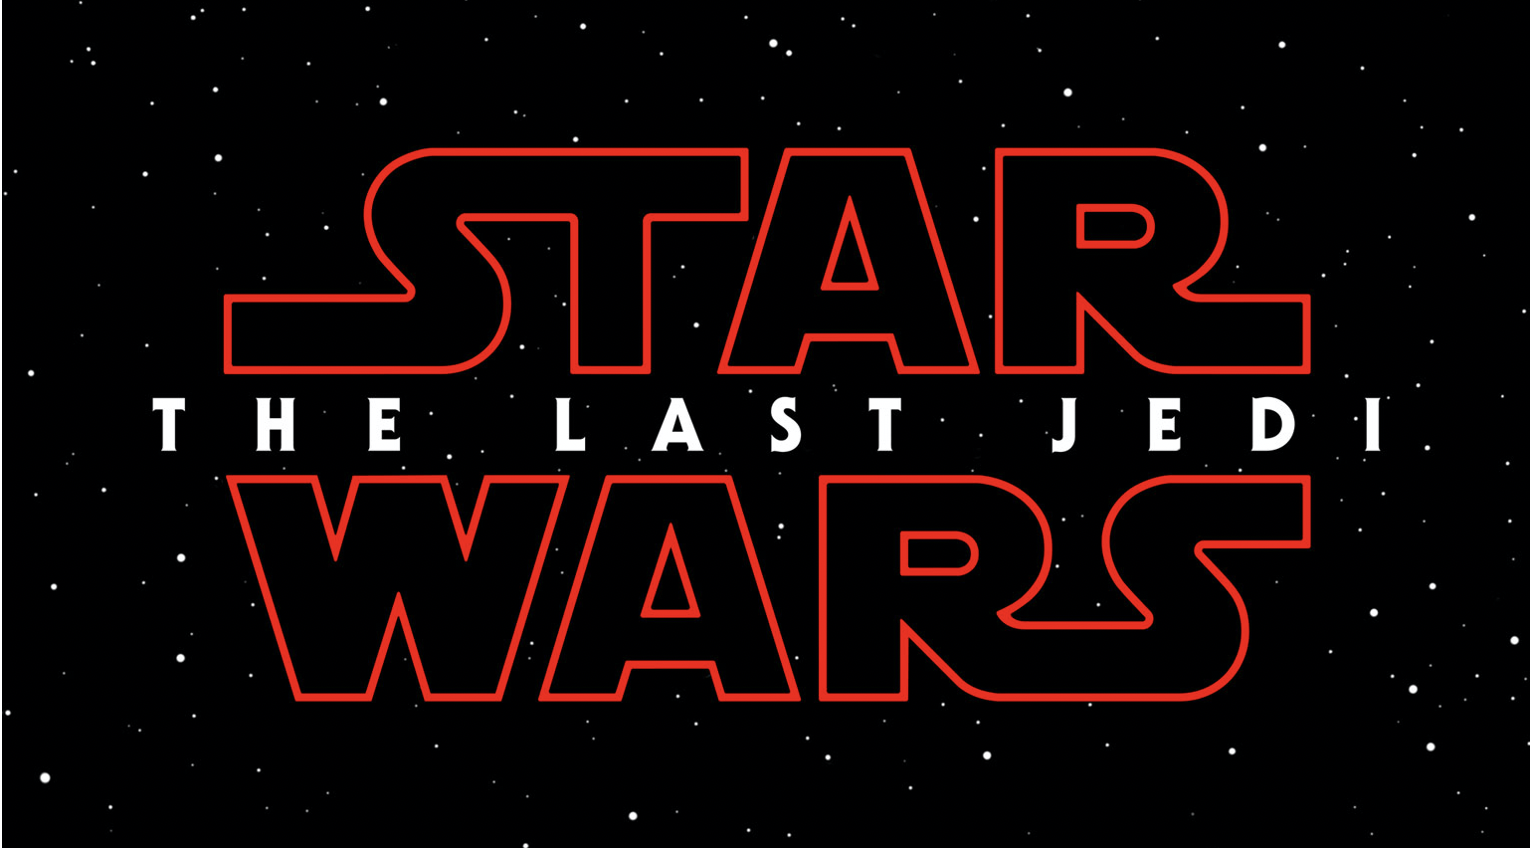 An image of the Star Wars: The Last Jedi logo